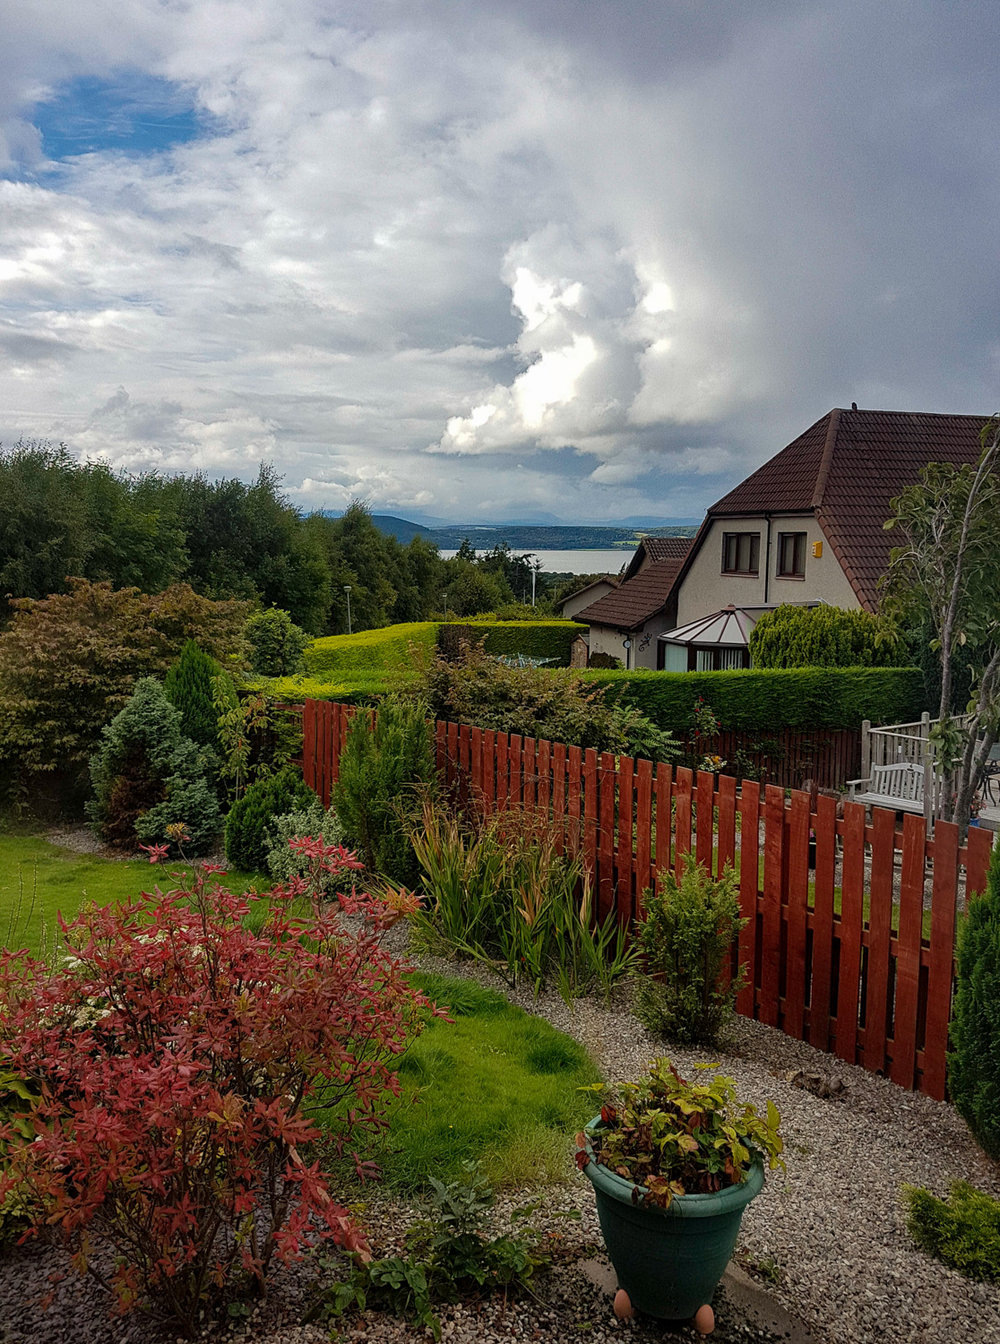 The view from our room at Helen's, over the firth and into the hills of Caledonia